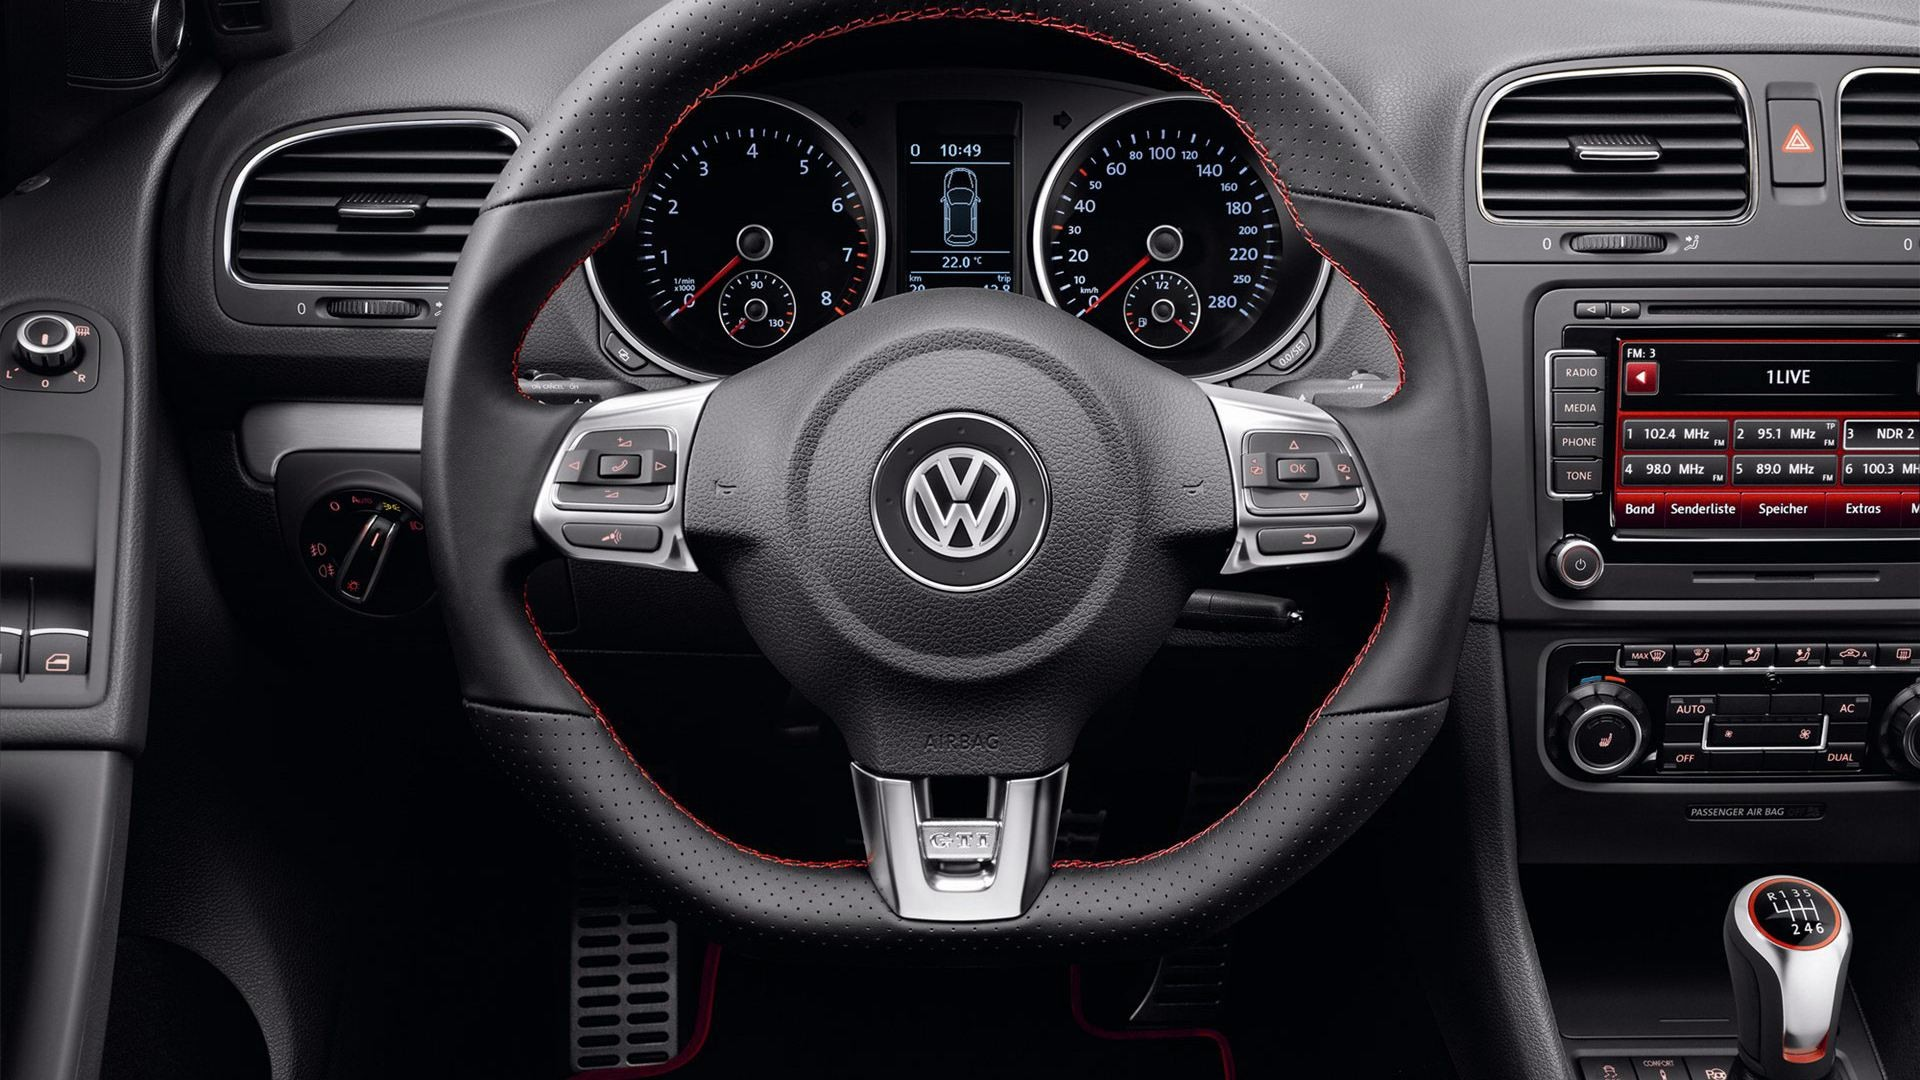 cars gti volkswagen golf wallpaper 1920x1080 59517 wallpaperup. Black Bedroom Furniture Sets. Home Design Ideas